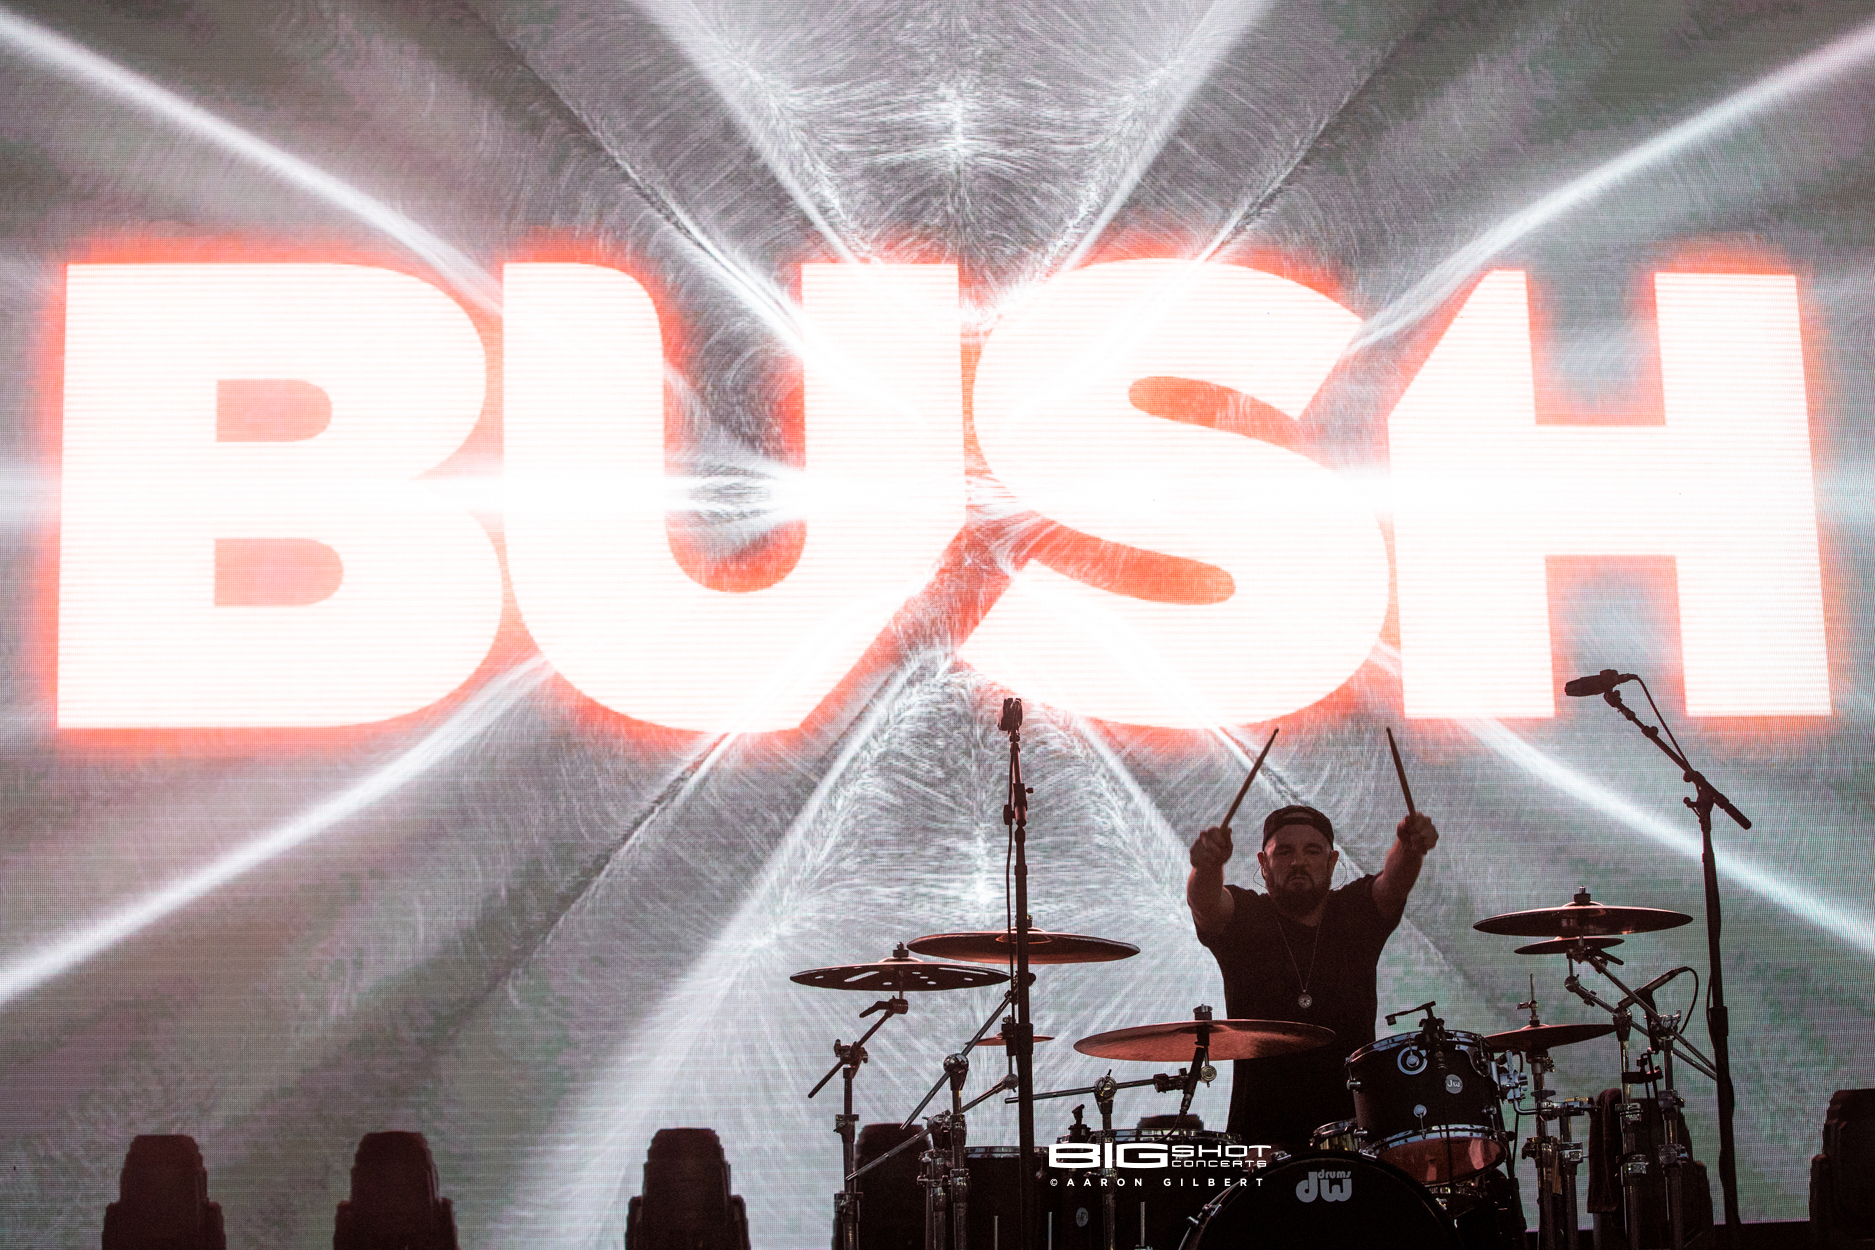 Bush at Bayfront Park Amphitheater